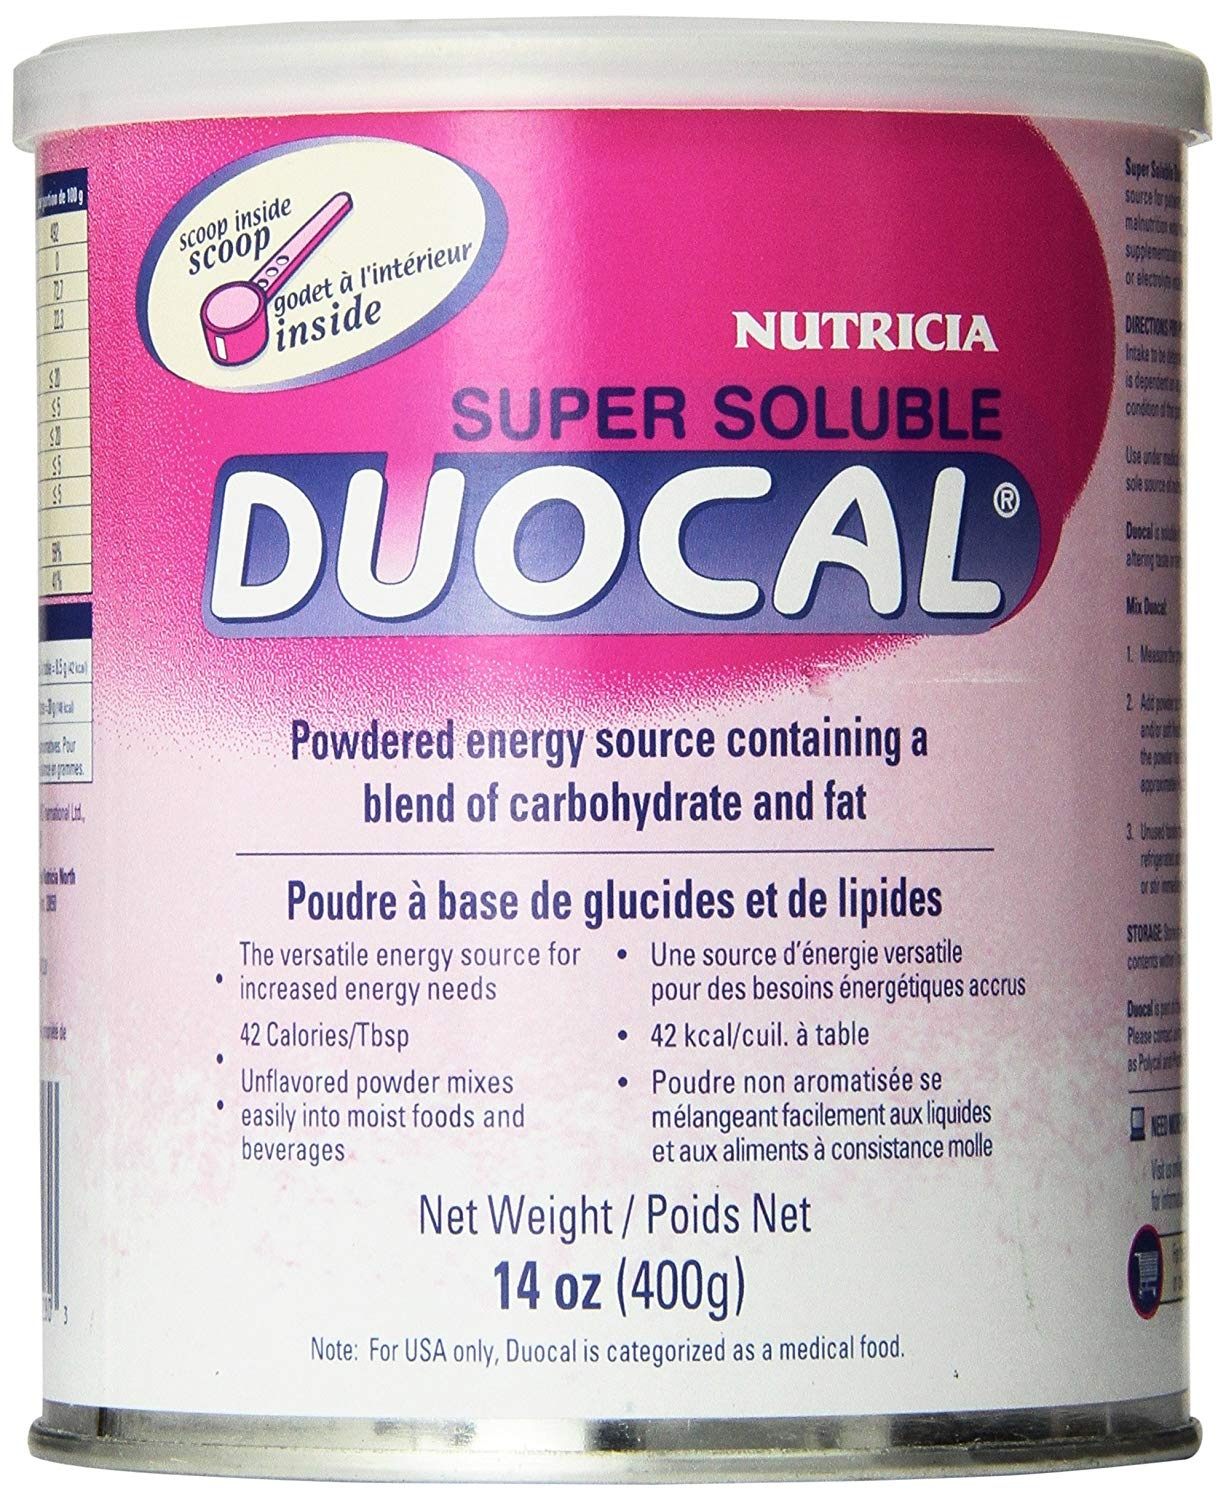 Super Soluble Duocal